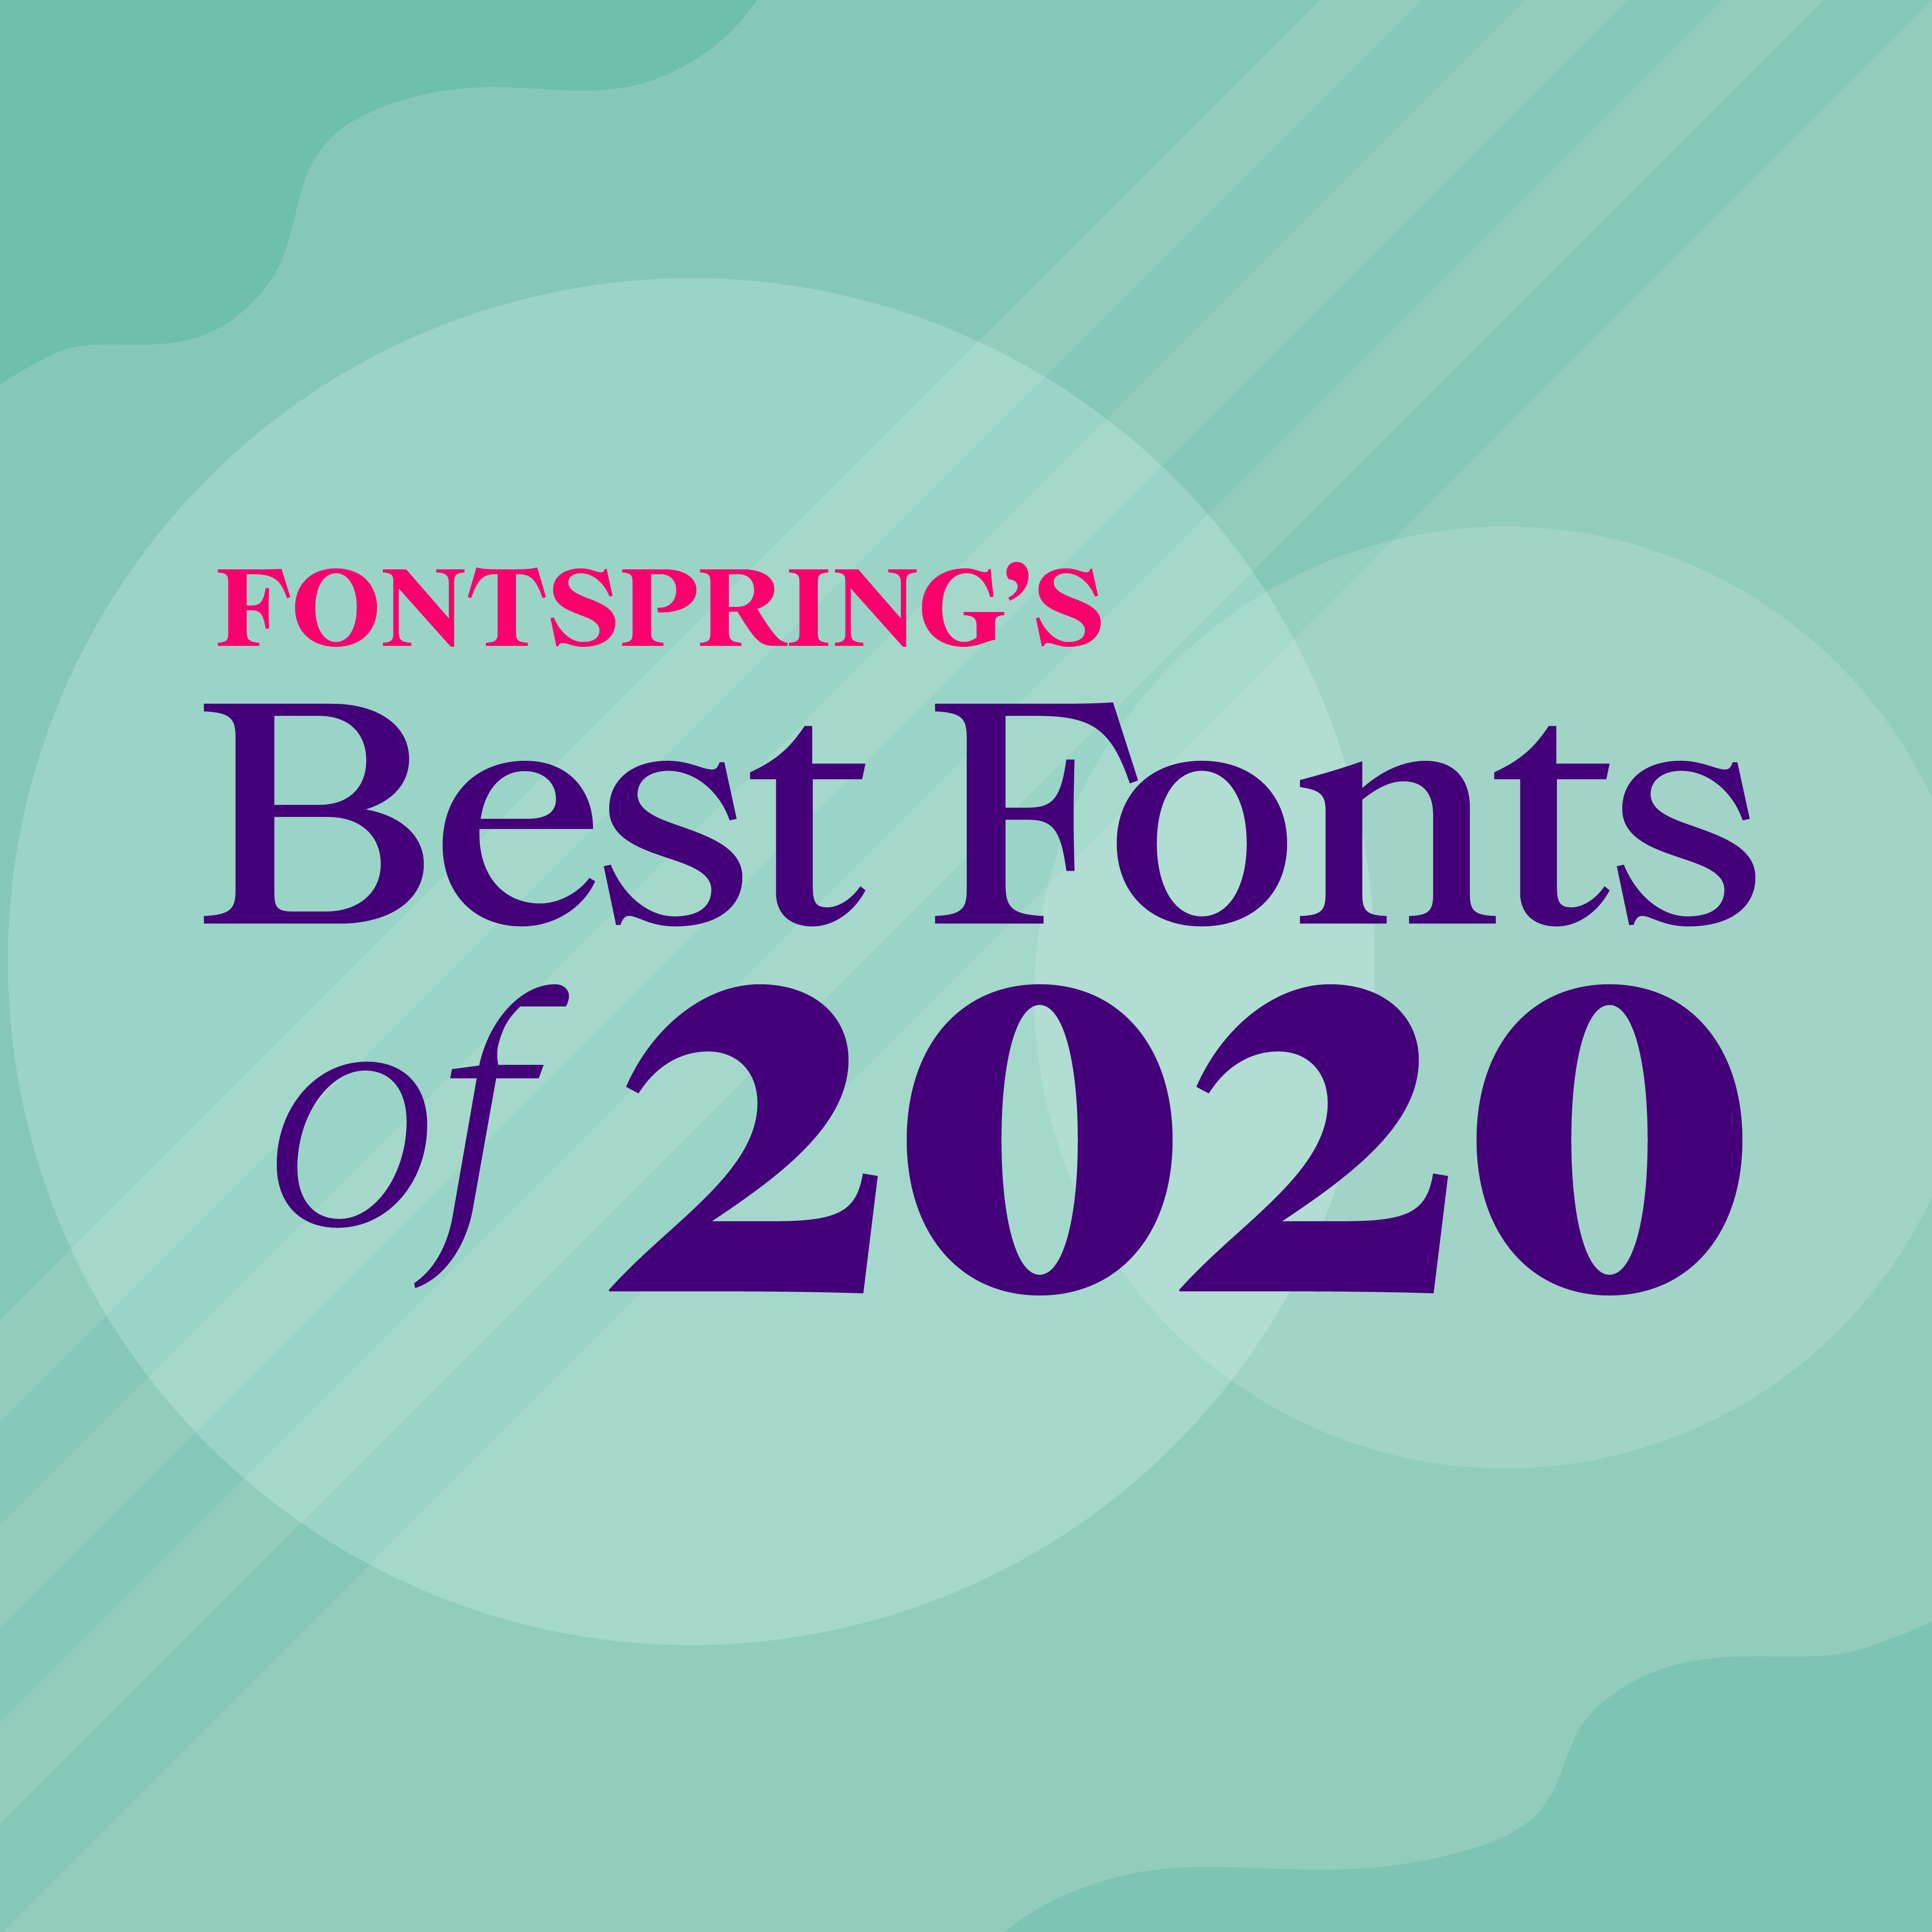 Best Fonts of 2020